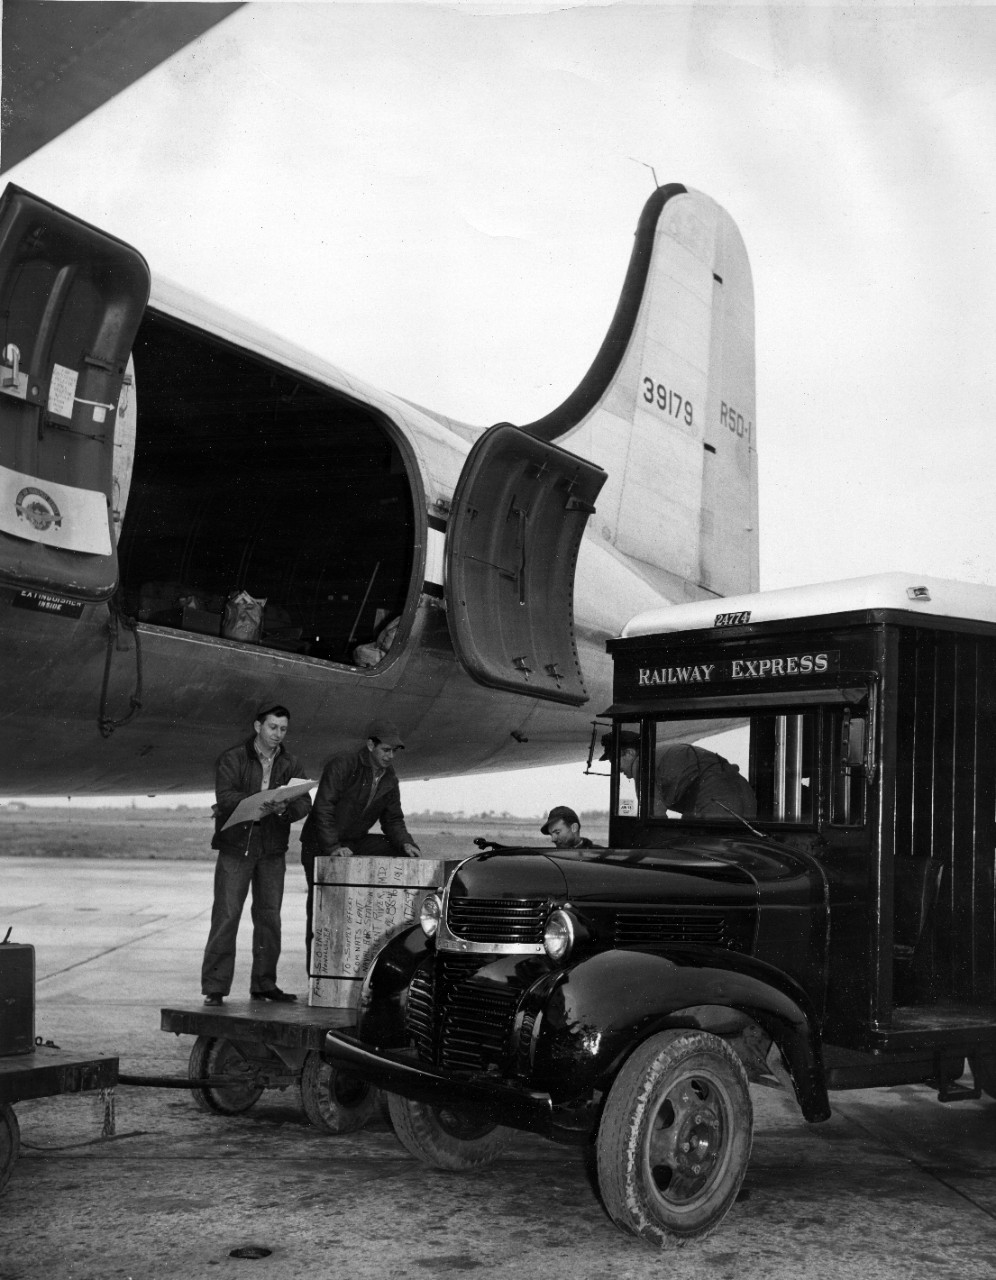 Loading cargo on to a Naval Air Transport Service (NATS) aircraft from a Railway Express vehicle. The crate being loaded is from Honolulu, HI to Naval Air Station Patuxent River, MD, circa 1944.